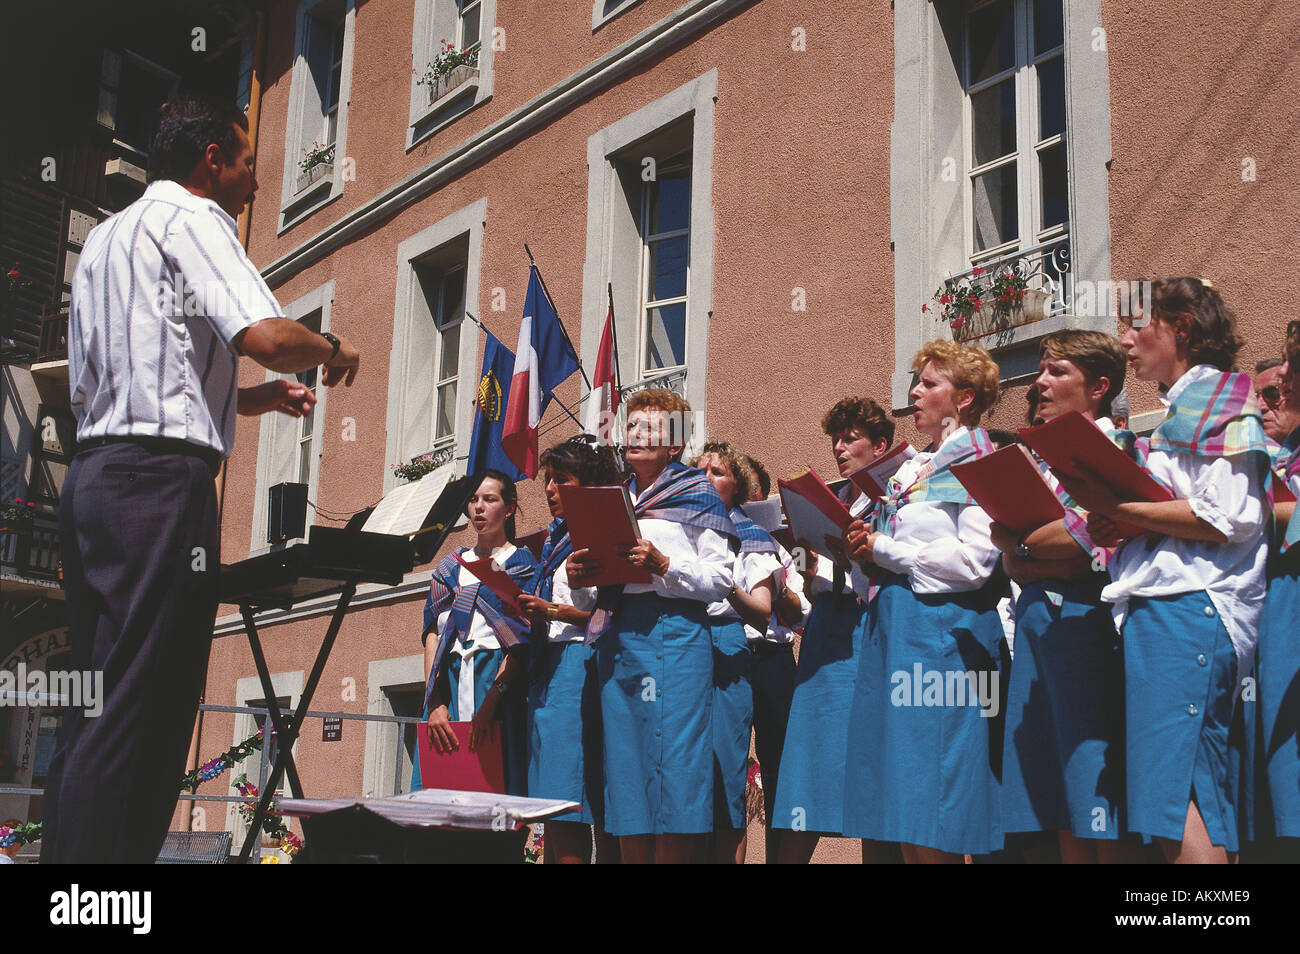 In Front Of A Terracotta Coloured Building The Beaufort Choir